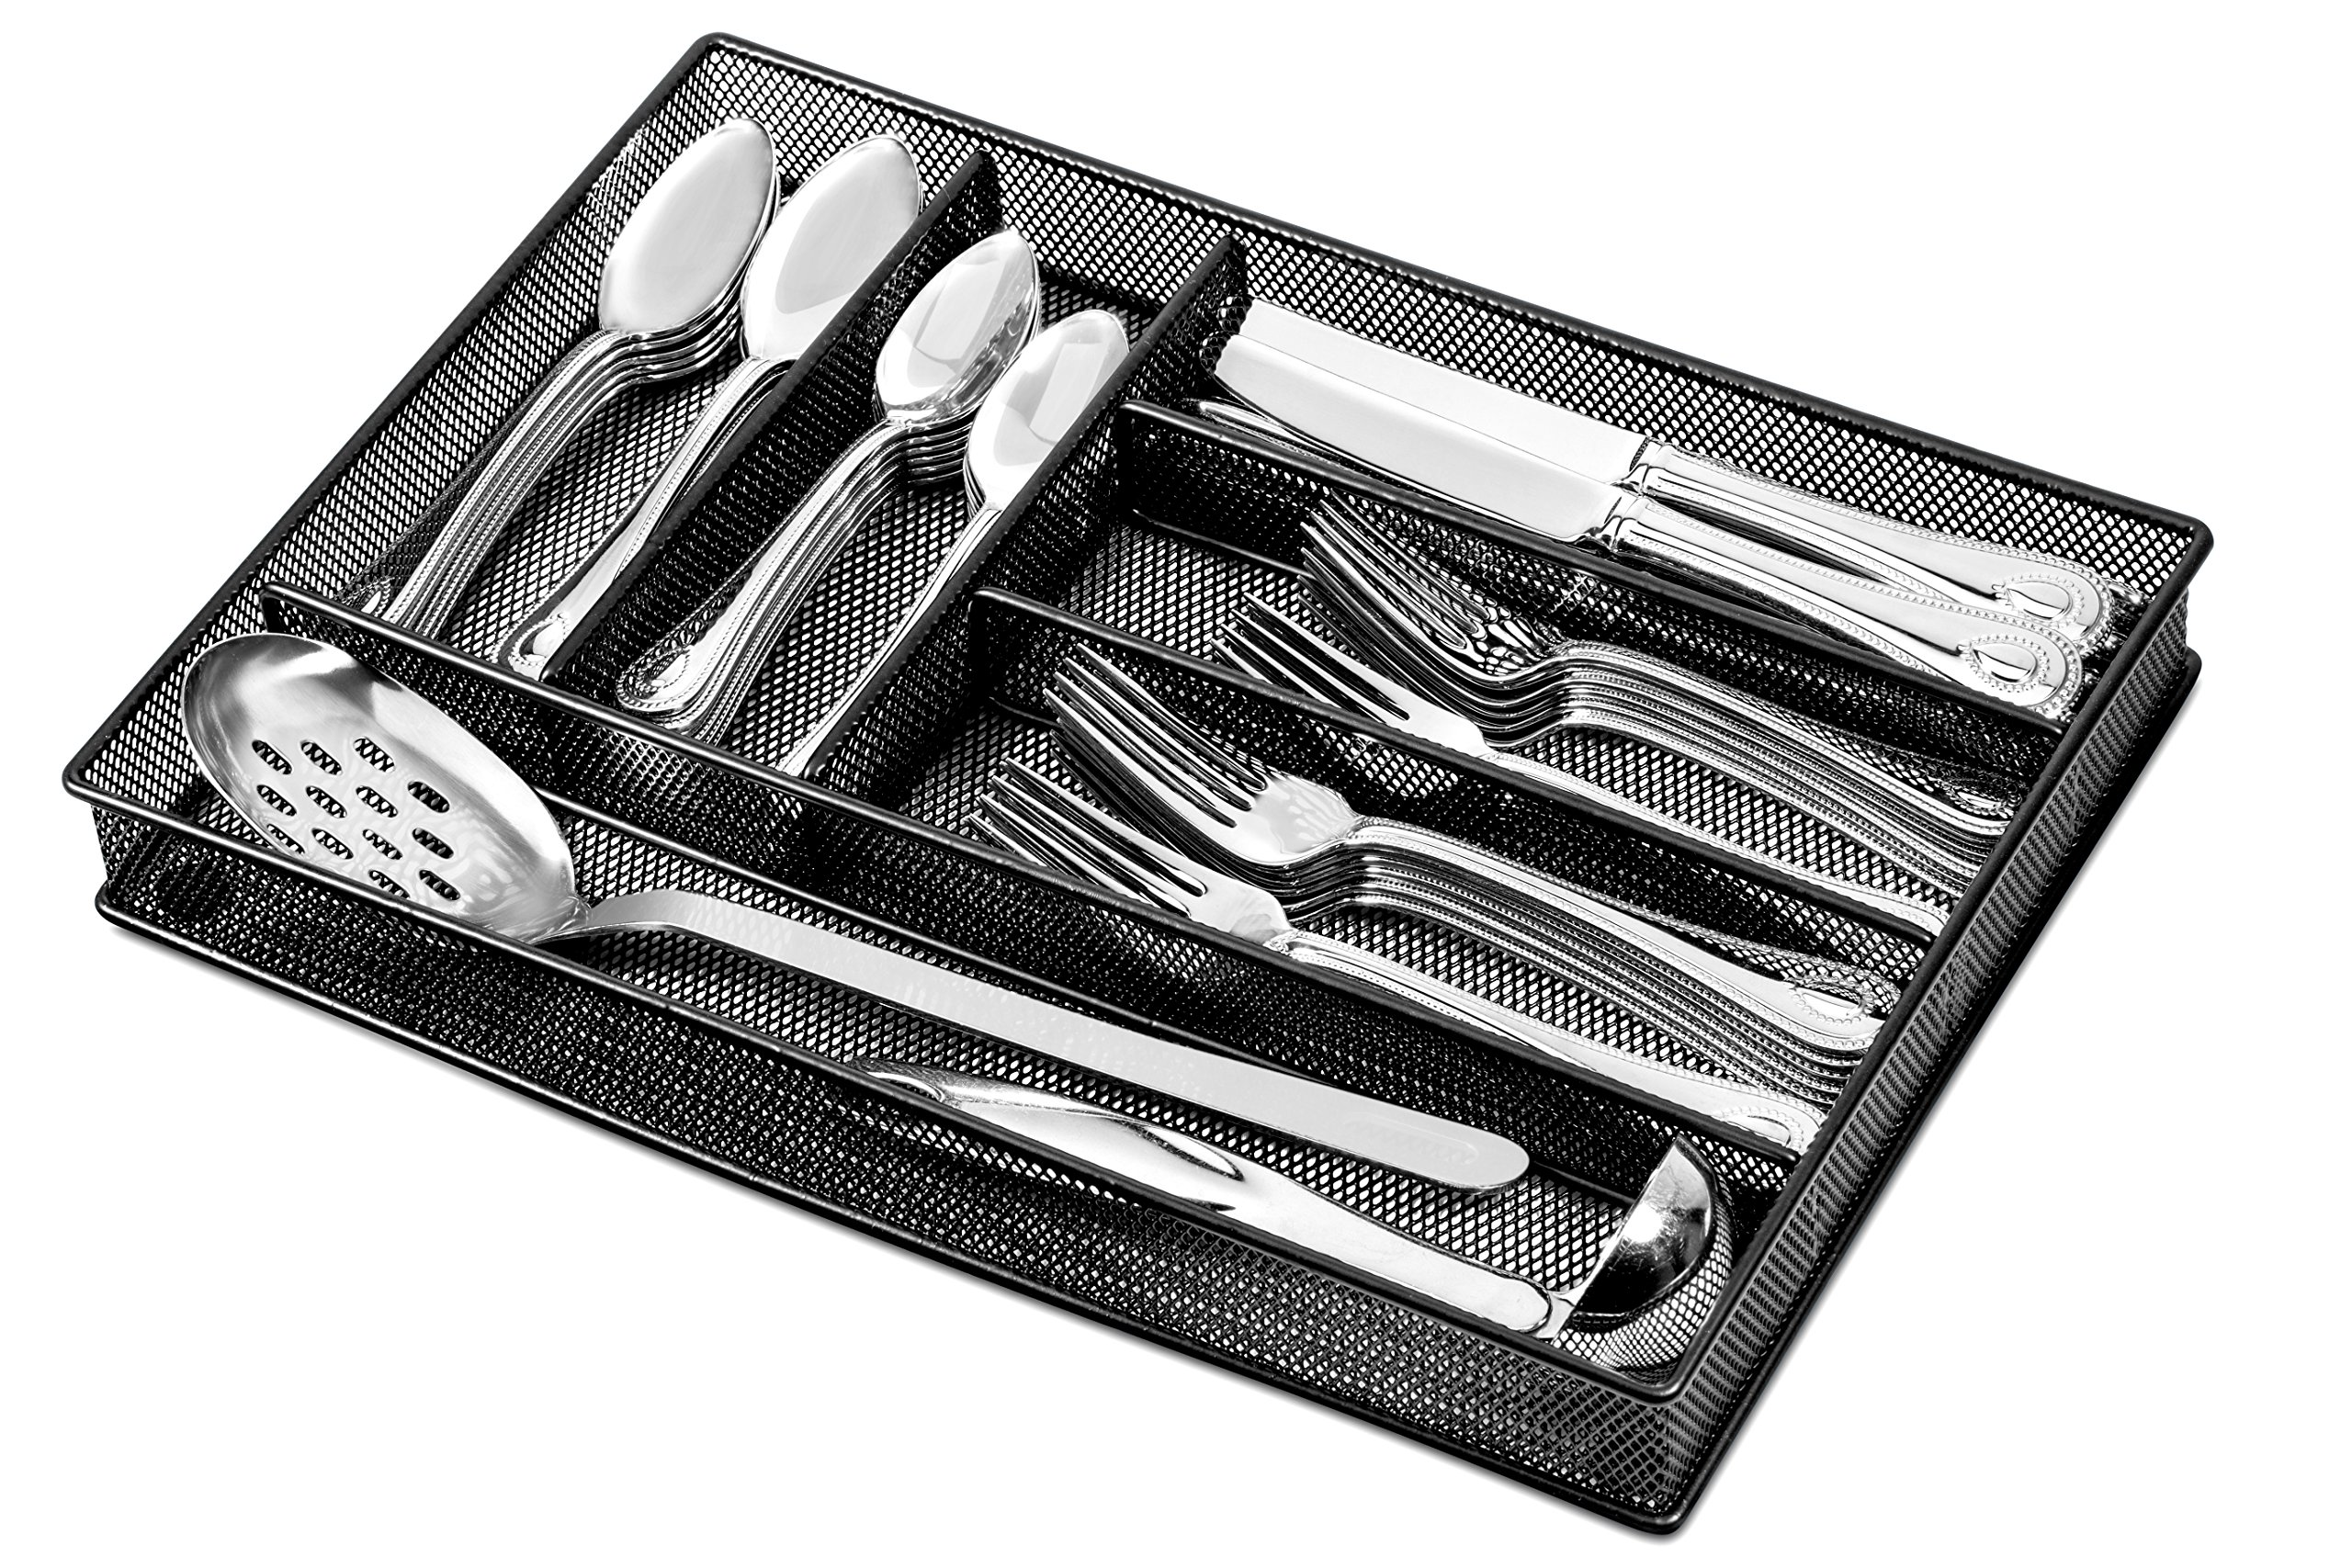 Flatware Drawer Organizer - Slip Resistant Kitchen Tray with 6 Sections to Neatly Arrange Cutlery and Serving Utensils. Also Great to Keep your Desk Drawer and Office Supplies Well Organized (Black)